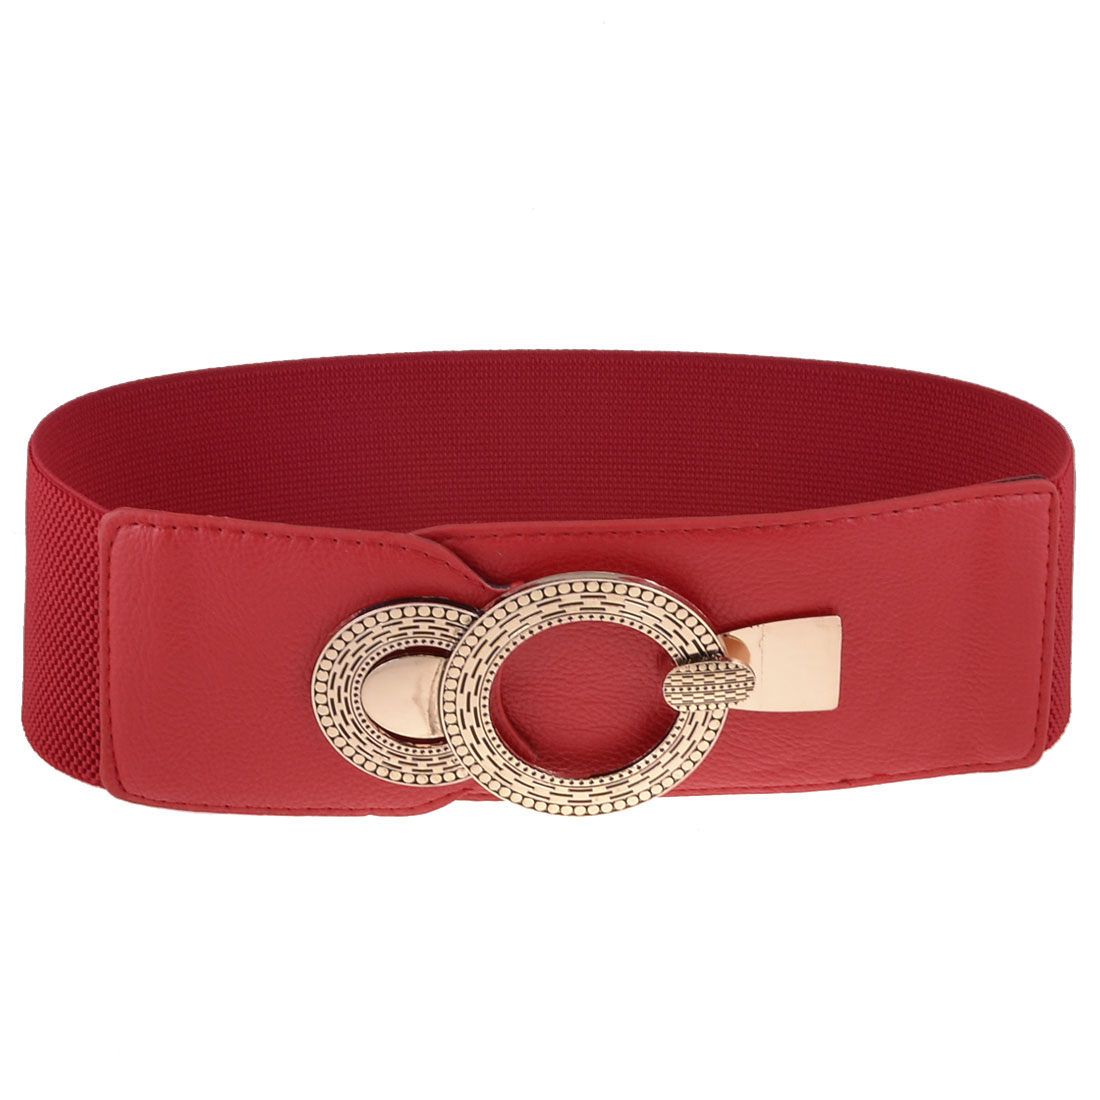 Woman Metal Interlocking Buckle 7.5cm Wide Elastic Waist Belt Waistband Red